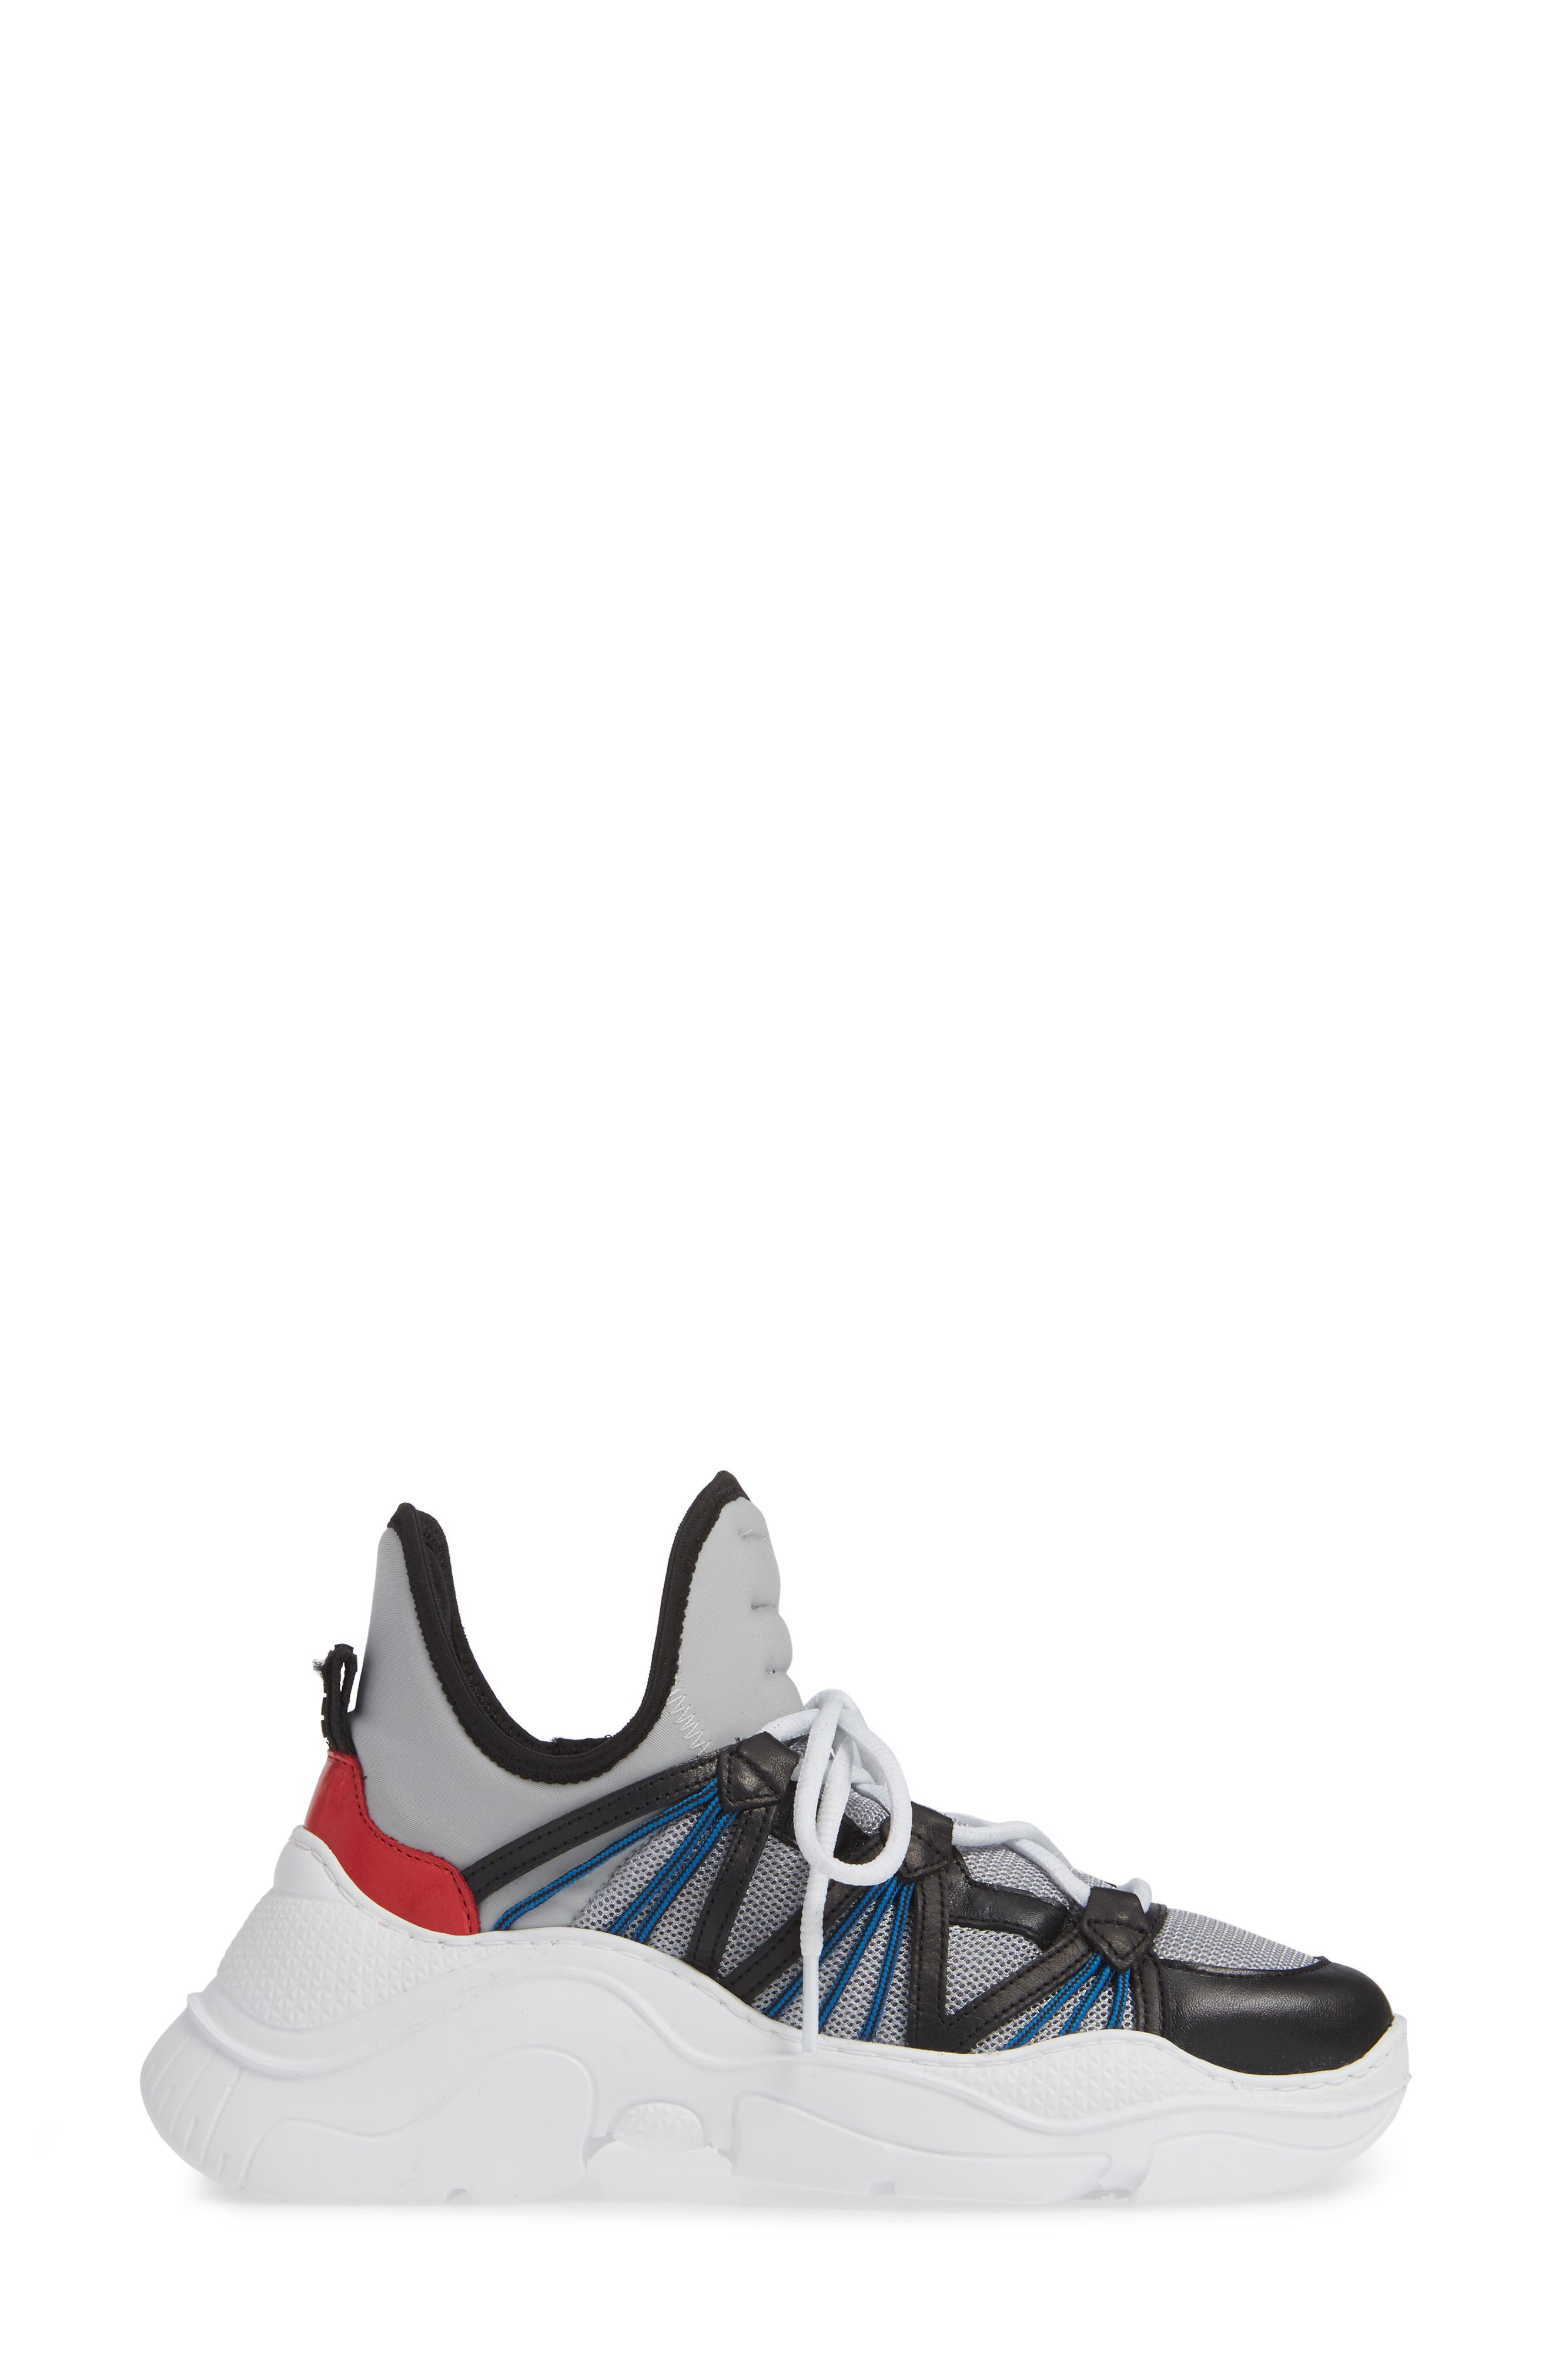 Anick Lace-Up Sneaker,                             Alternate thumbnail 3, color,                             SILVER/ BLACK/ CLUB RED